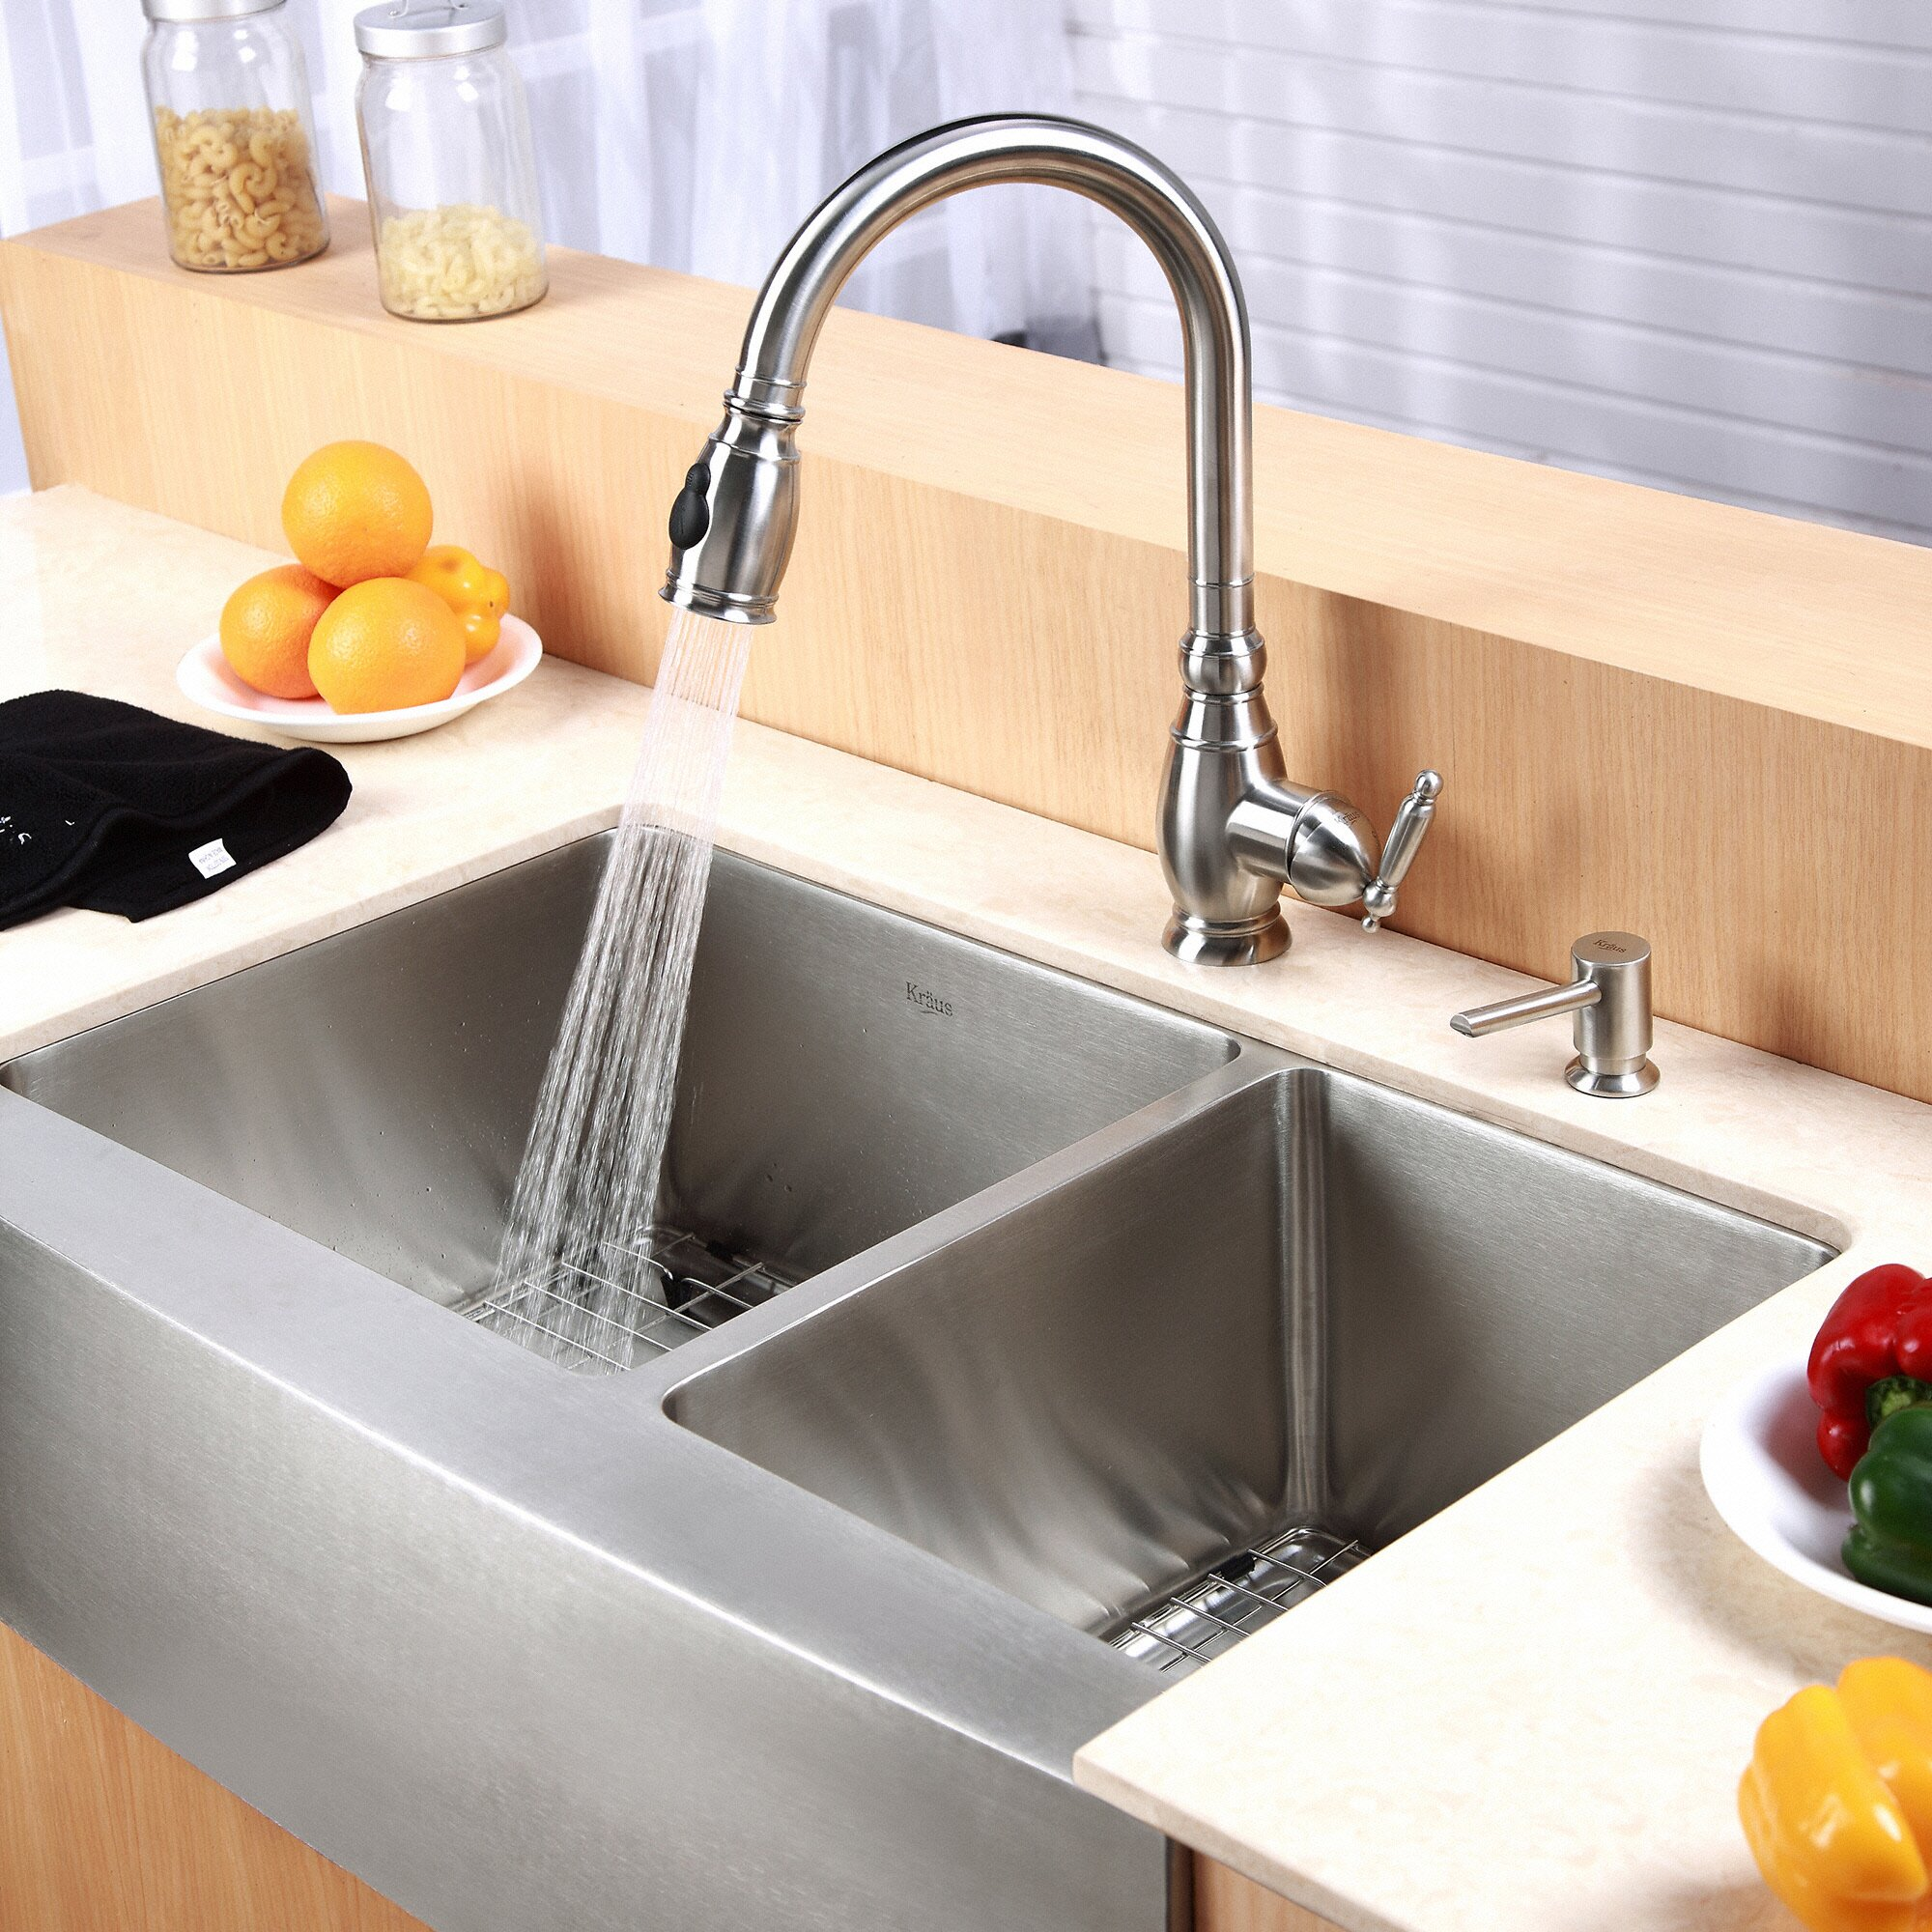 Double Farmhouse Kitchen Sink : Home Improvement Kitchen Fixtures ... Farmhouse / Apron Kitchen Sinks ...